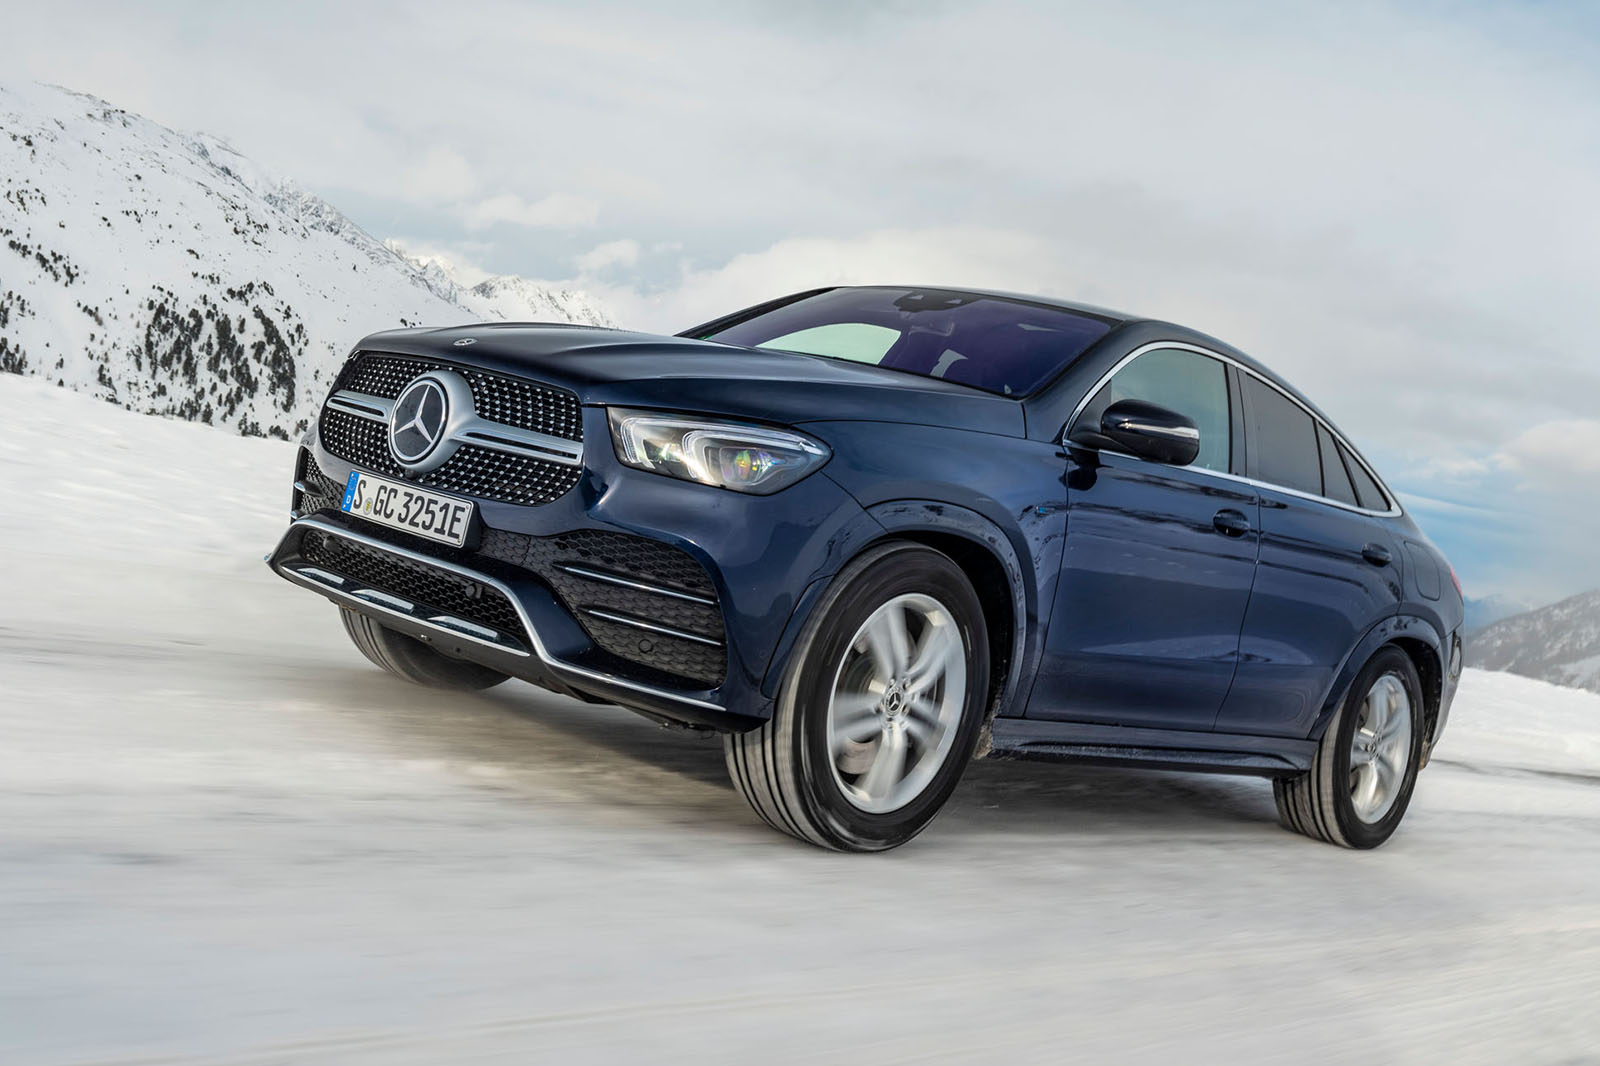 Mercedes Benz Gle Coupe Review 2021 Autocar